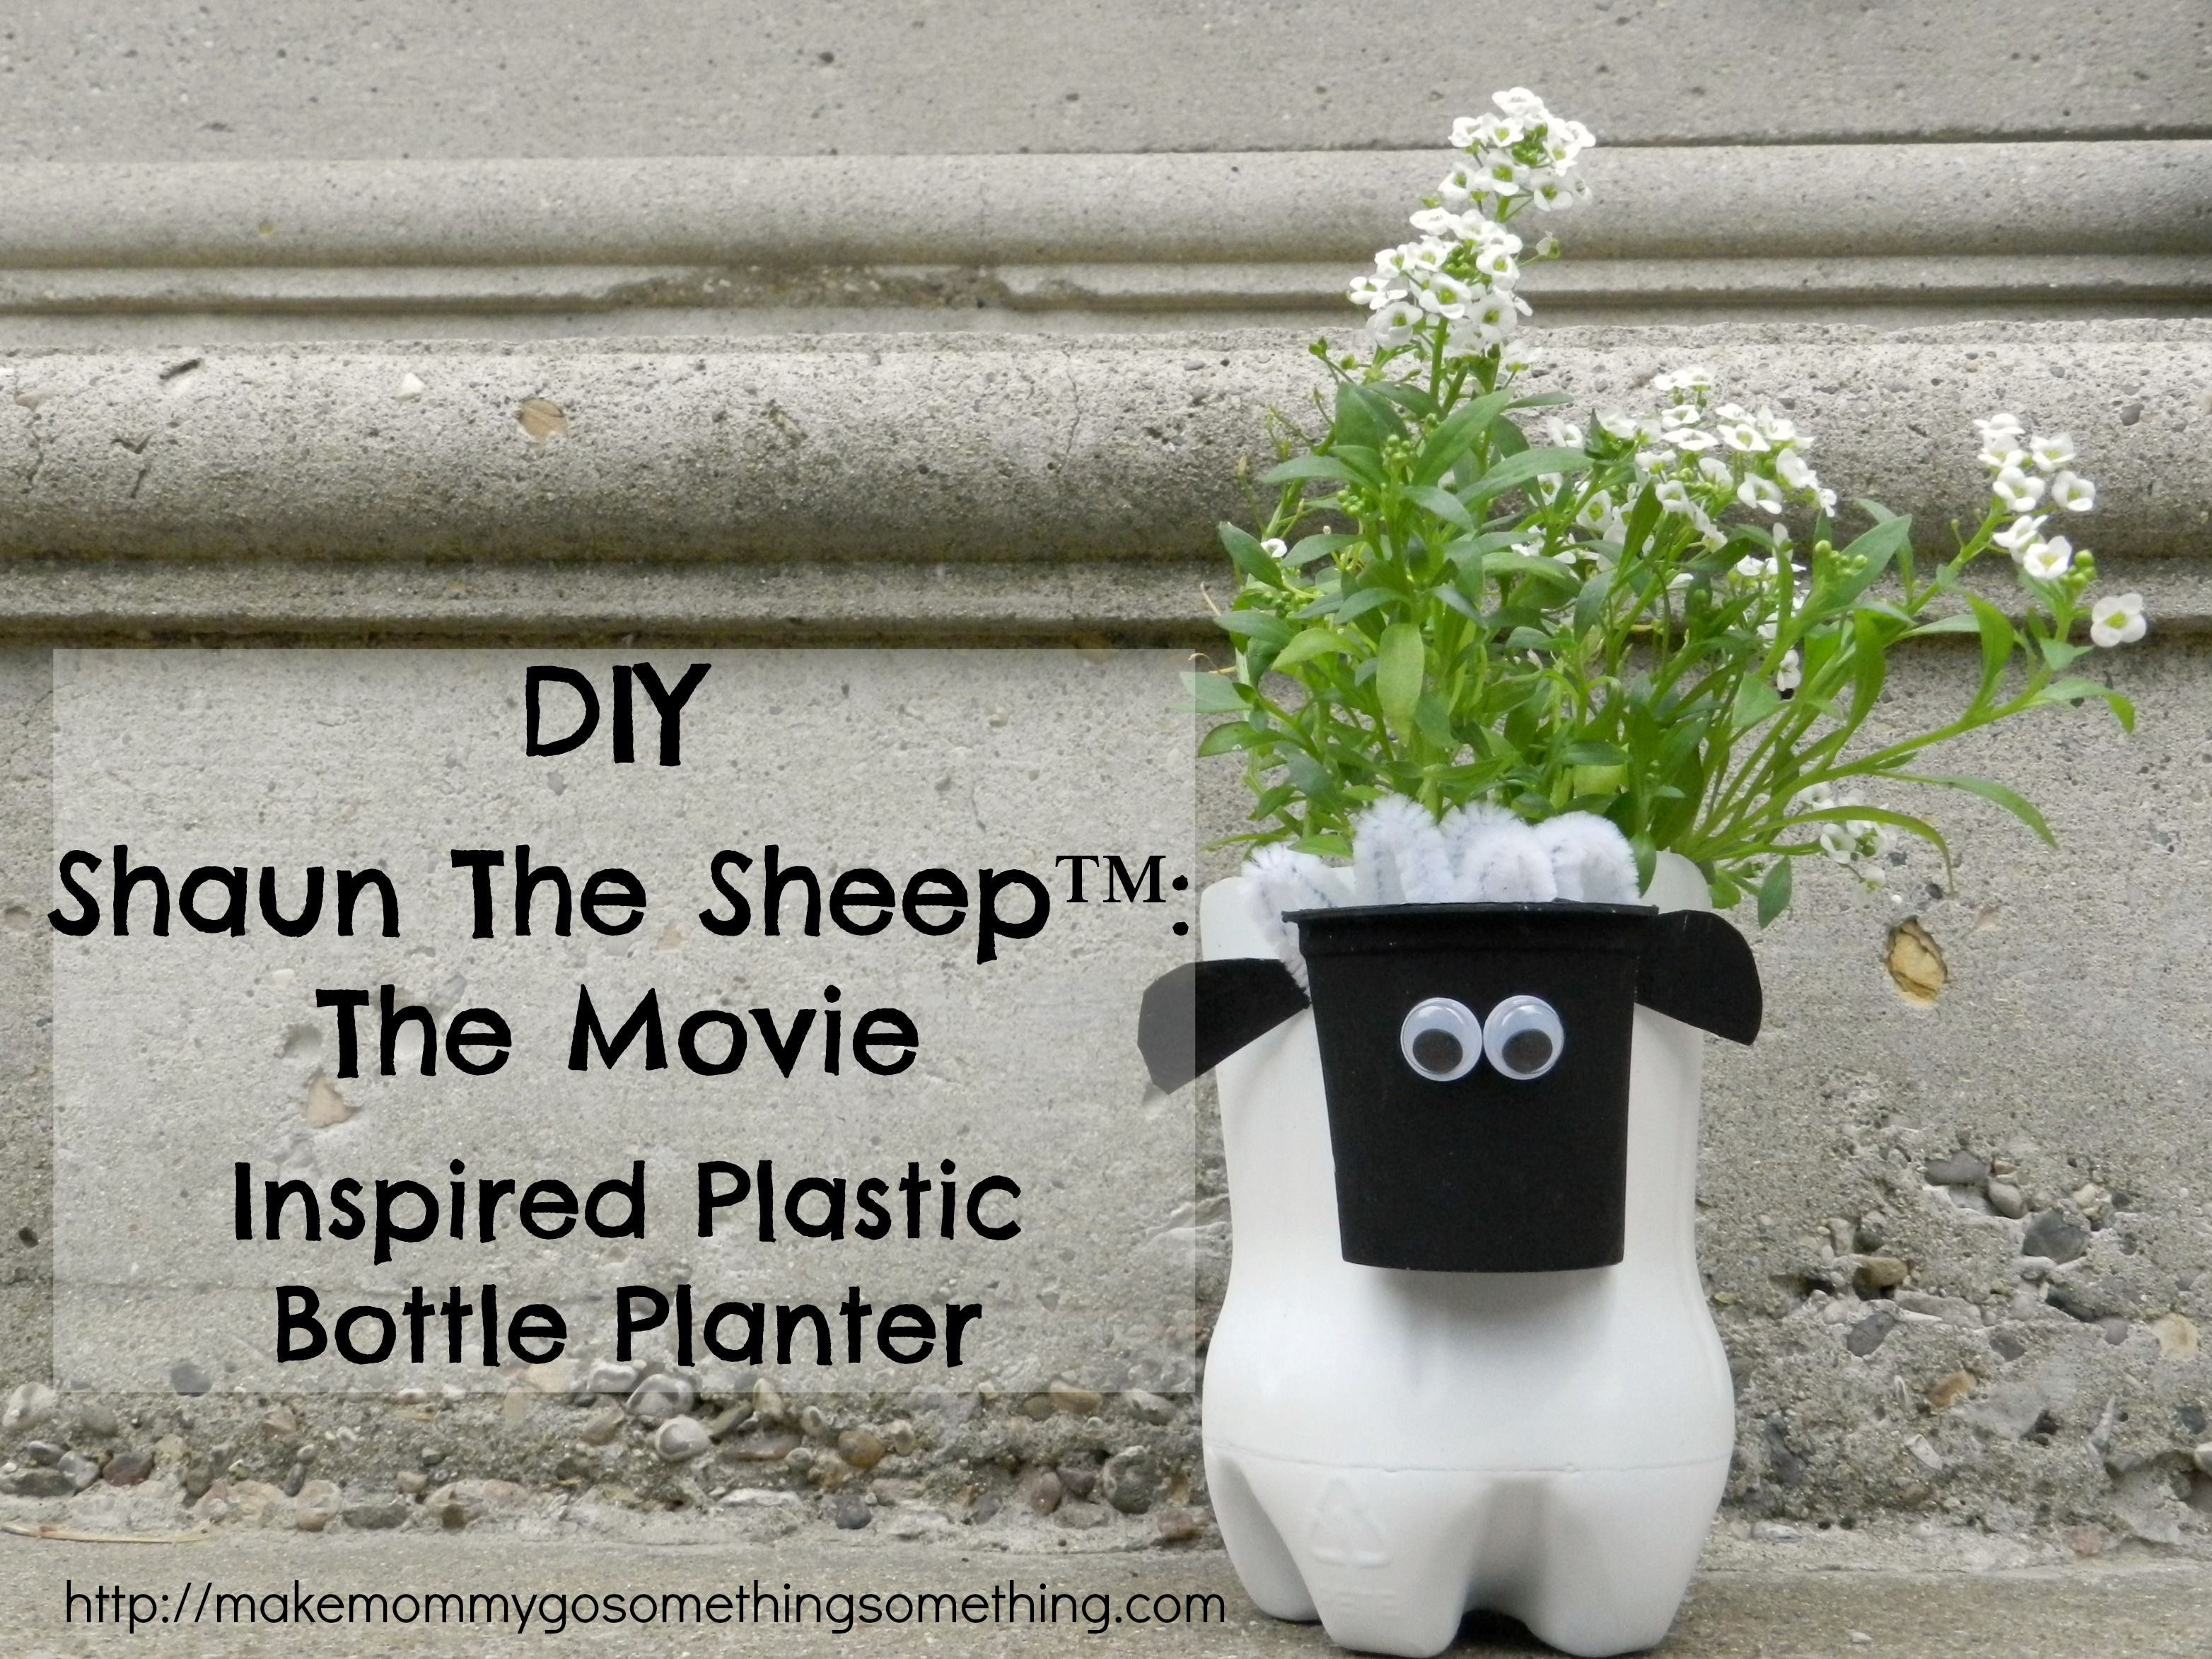 Recycled bottle planters diy recycled - Diy Shaun The Sheep Inspired Plastic Bottle Planter